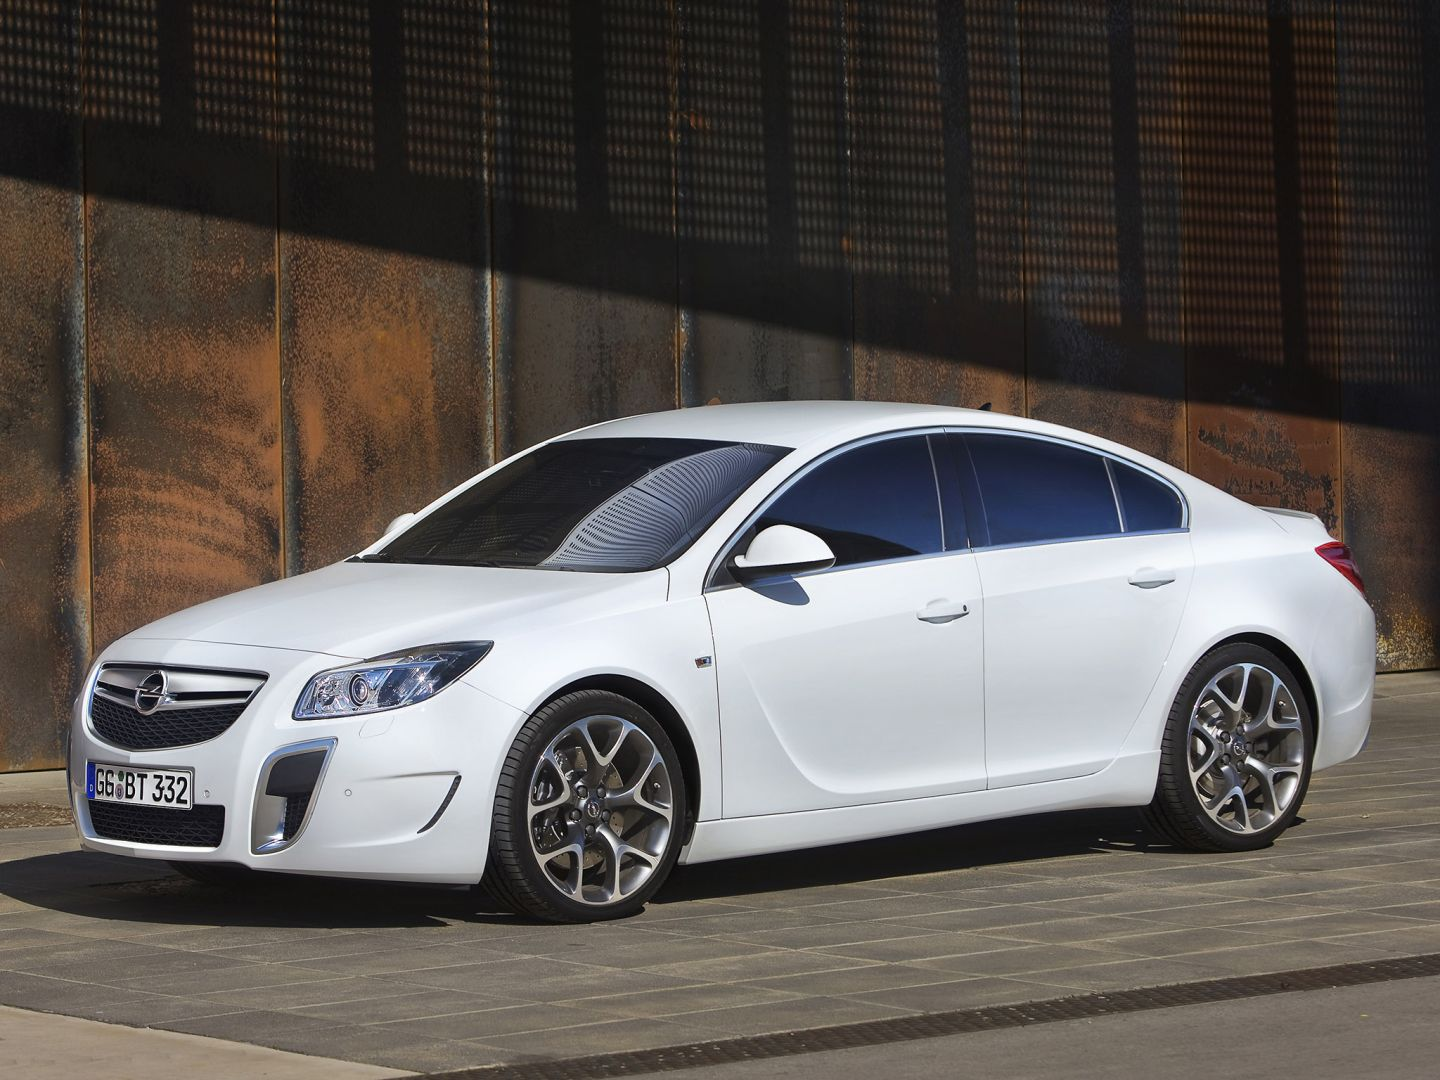 2014 Opel Insignia OPC Sports Tourer Review - CarbonOctane